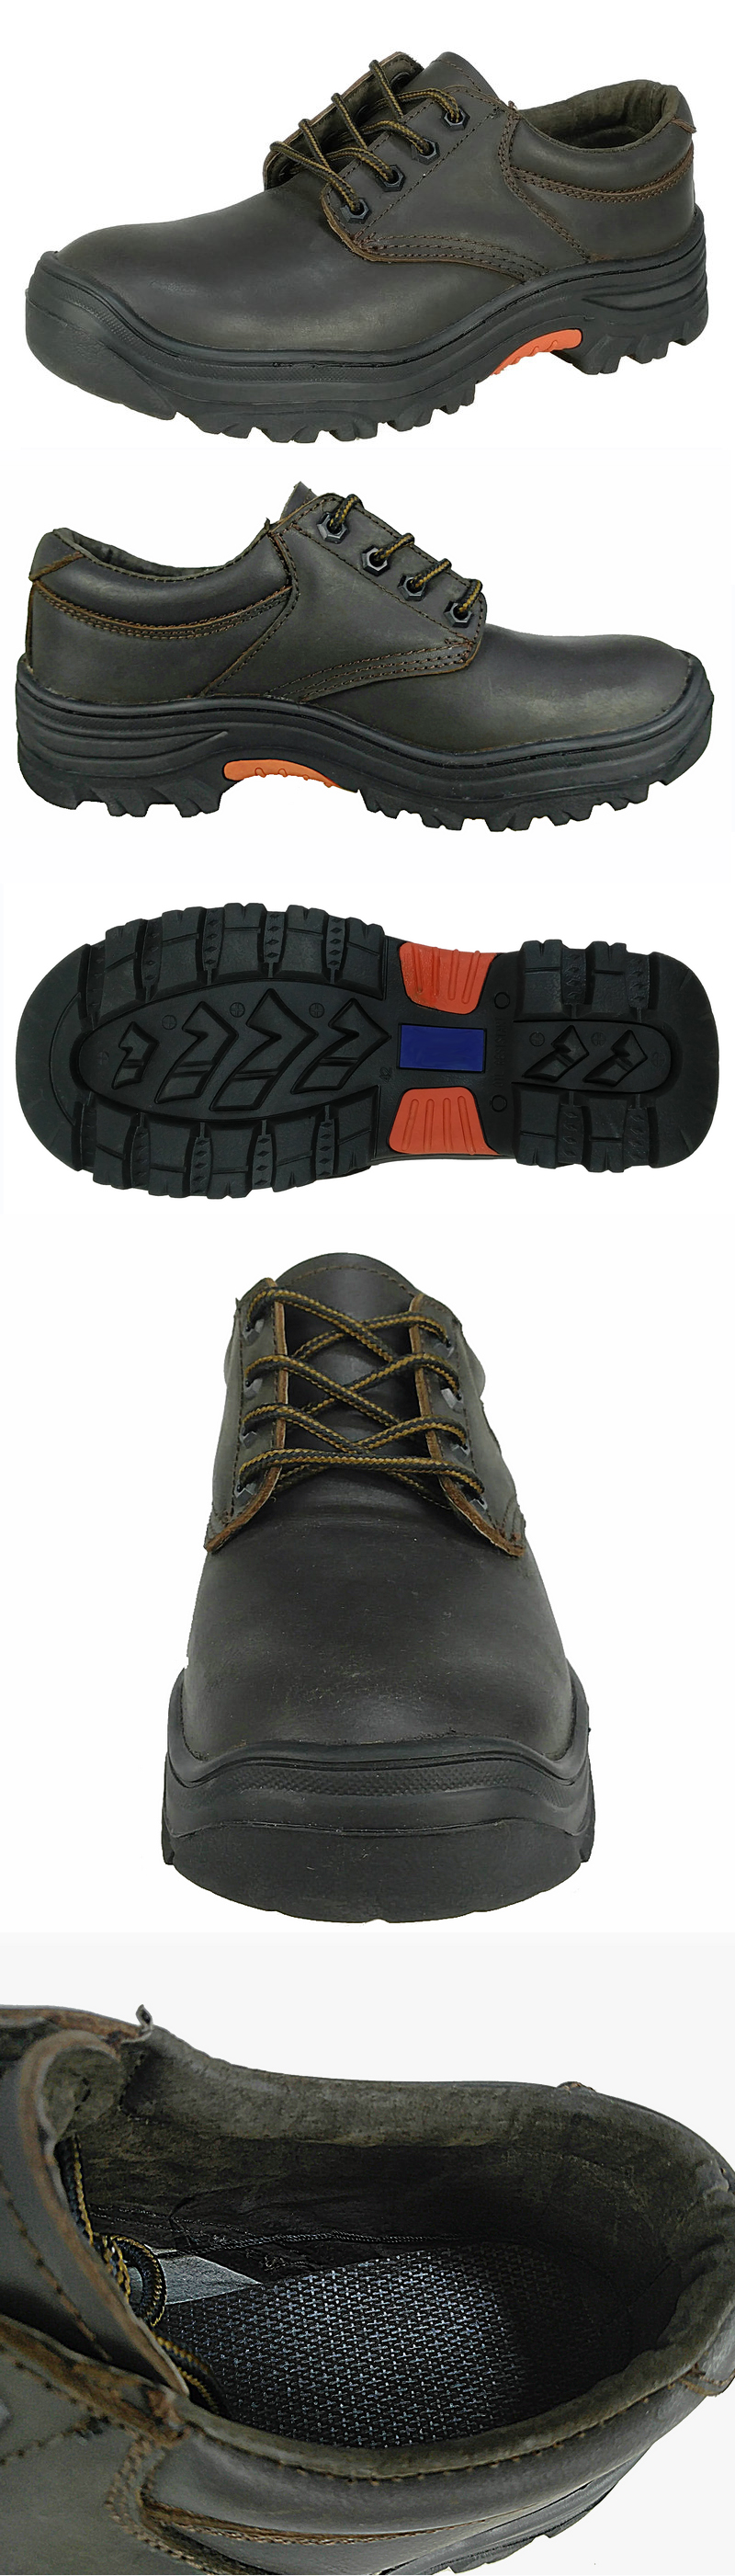 leather safety shoes SS5C204-x